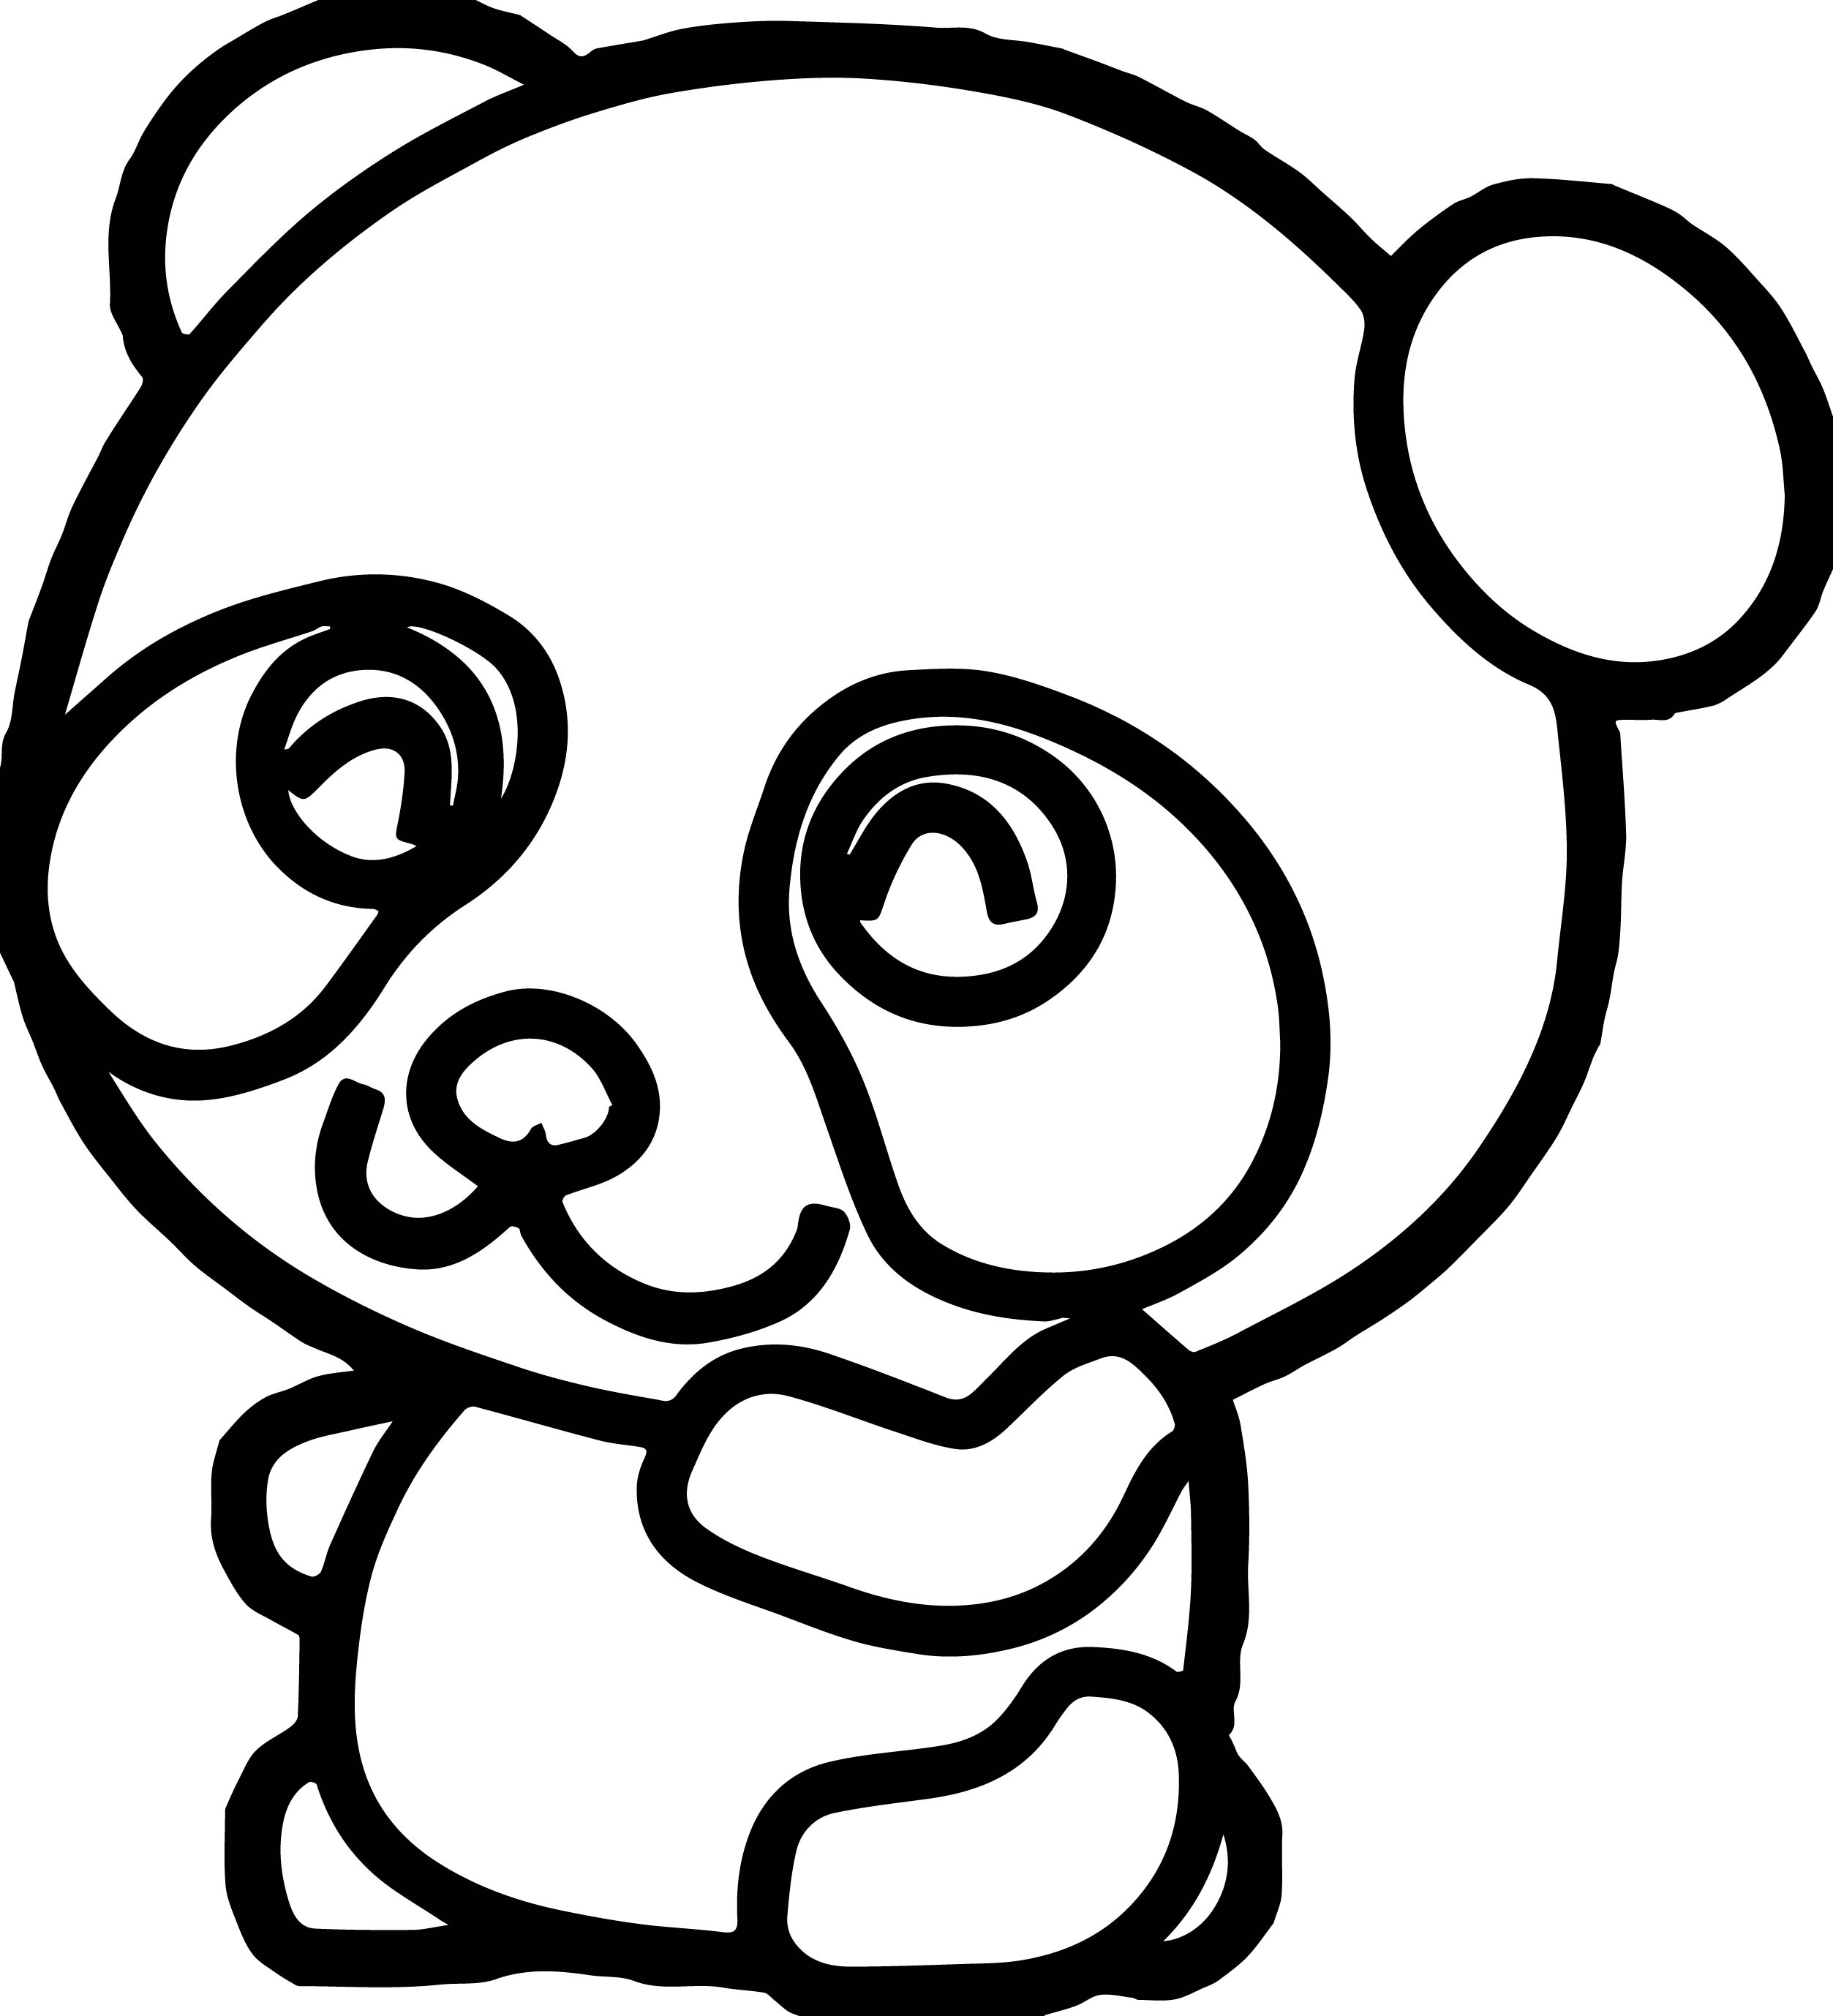 anime panda drawing at getdrawings com free for personal use anime